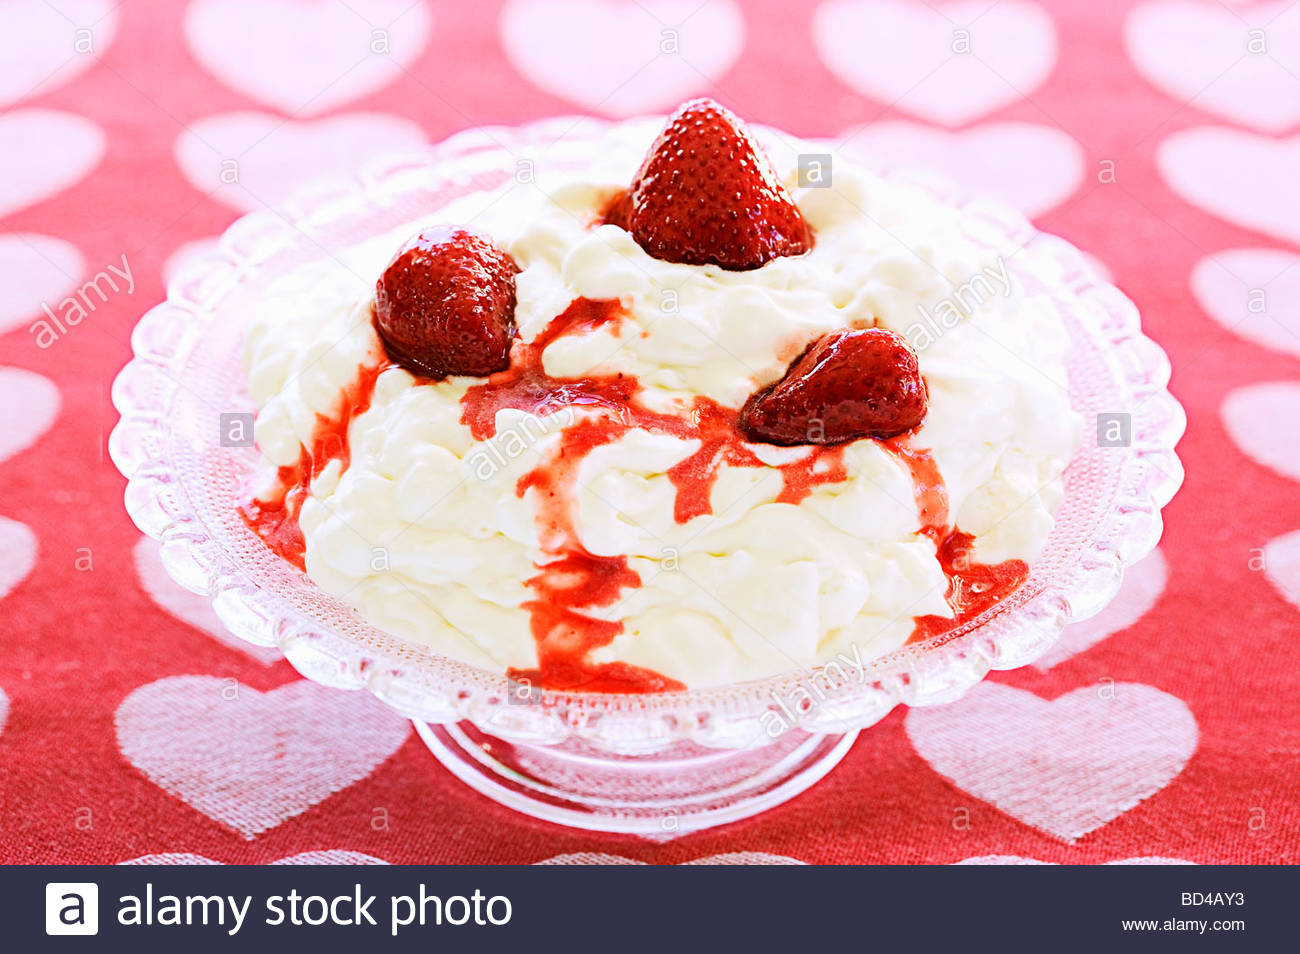 Ris a la Malta (Swedish rice pudding Stock Photo: 25297303 - Alamy Swedish Rice Pudding on swedish almond torte, swedish rice recipes, swedish lutefisk, swedish dip, swedish bread, swedish dumplings, swedish milk, swedish sandwich, swedish kransekake, swedish hot dog, swedish pizza, swedish cheese, swedish donuts, swedish blood sausage, swedish gingerbread, swedish cheesecake, swedish krumkake, swedish cake, swedish cider, swedish potato sausage,